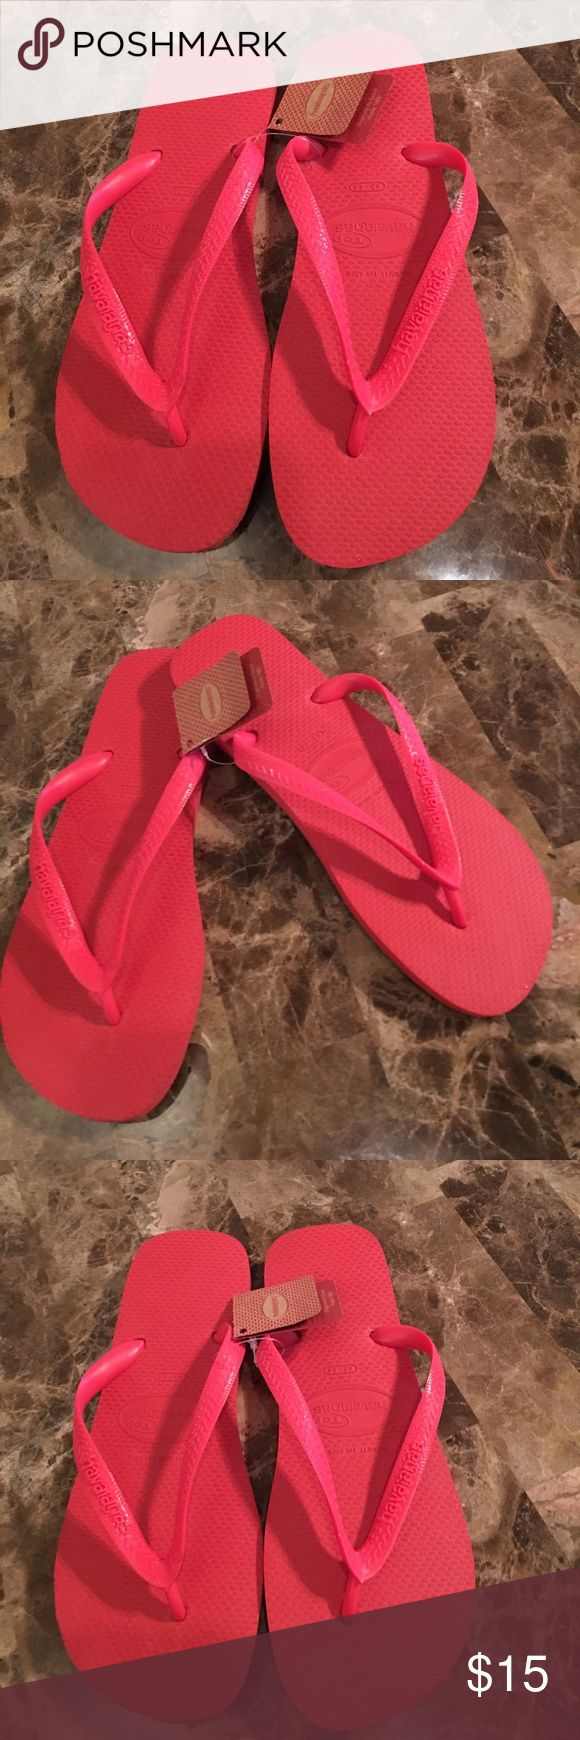 New Havaianas Ruby Red Rubber Flip Flop Shoe 43-44 Size 43-44 Ruby Red Flip Flops Shoes. Brand new with tags. Havaianas Shoes Sandals & Flip-Flops